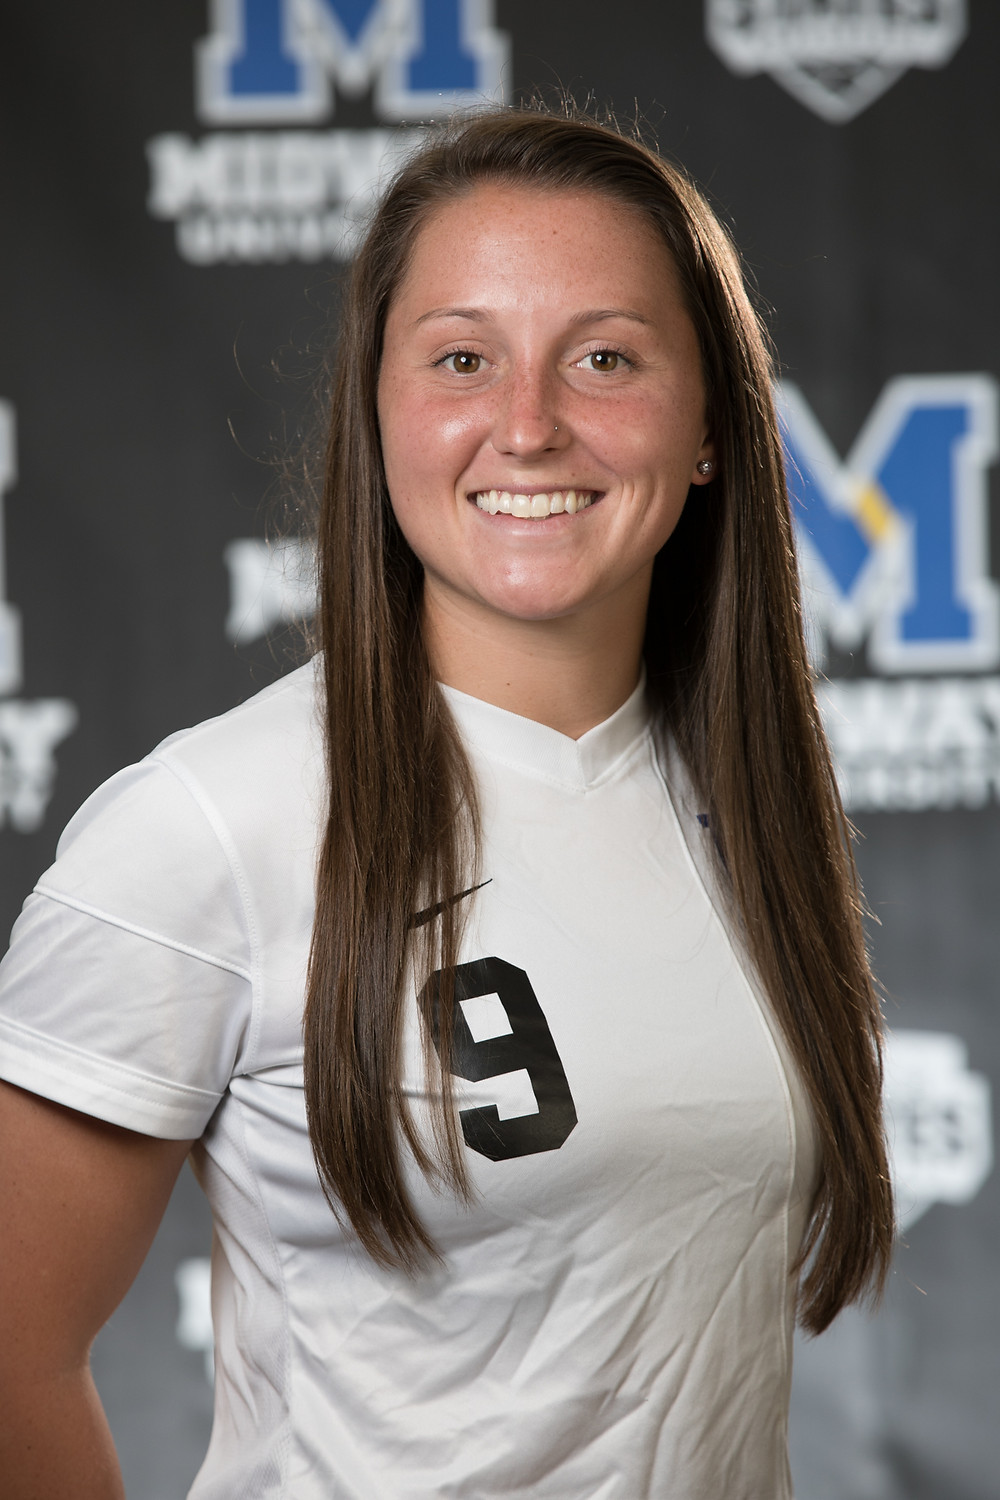 KINDSAY MILLER-RINEY was named River States Conference Women's Soccer Offensive Player of the Week for her play from Sept. 5 to 11. (Photo courtesy of Midway Univ. Athletics)